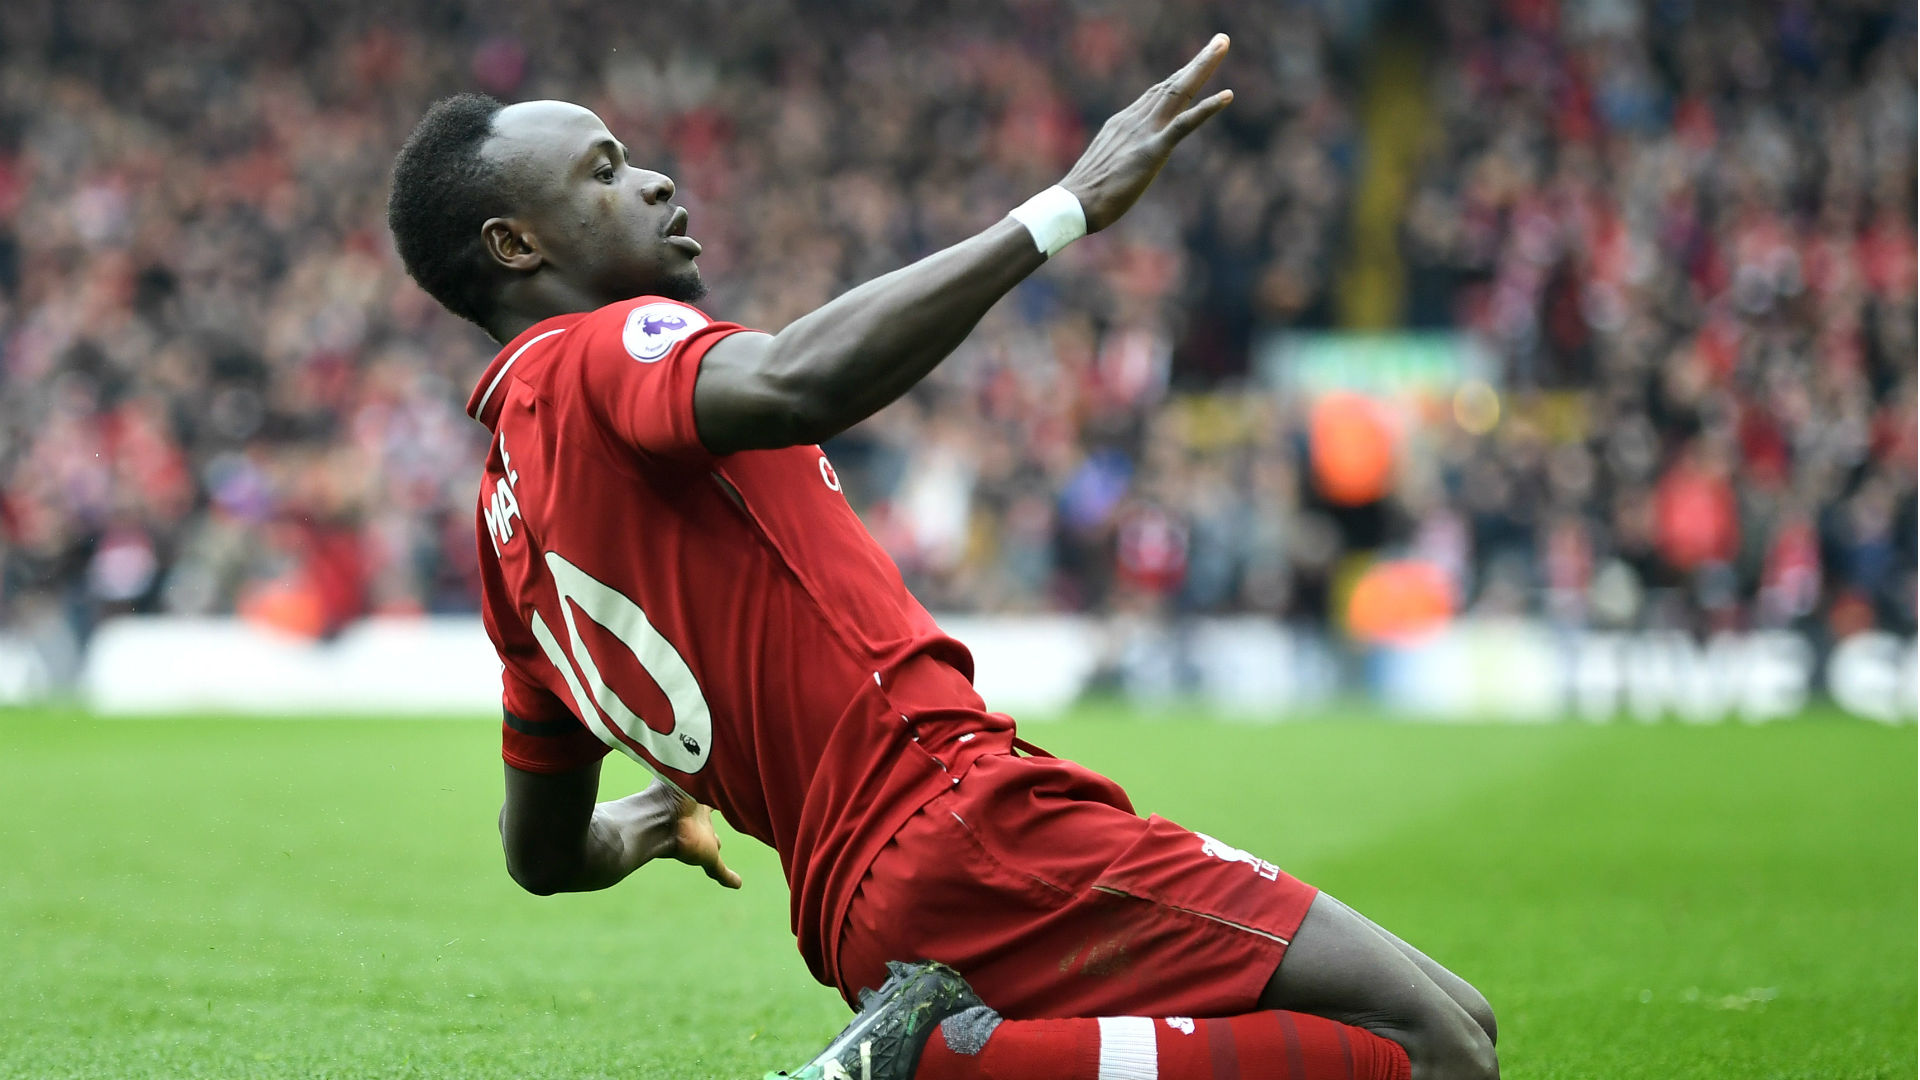 Mane and Liverpool out to do the double over Porto - Champions League in Opta numbers